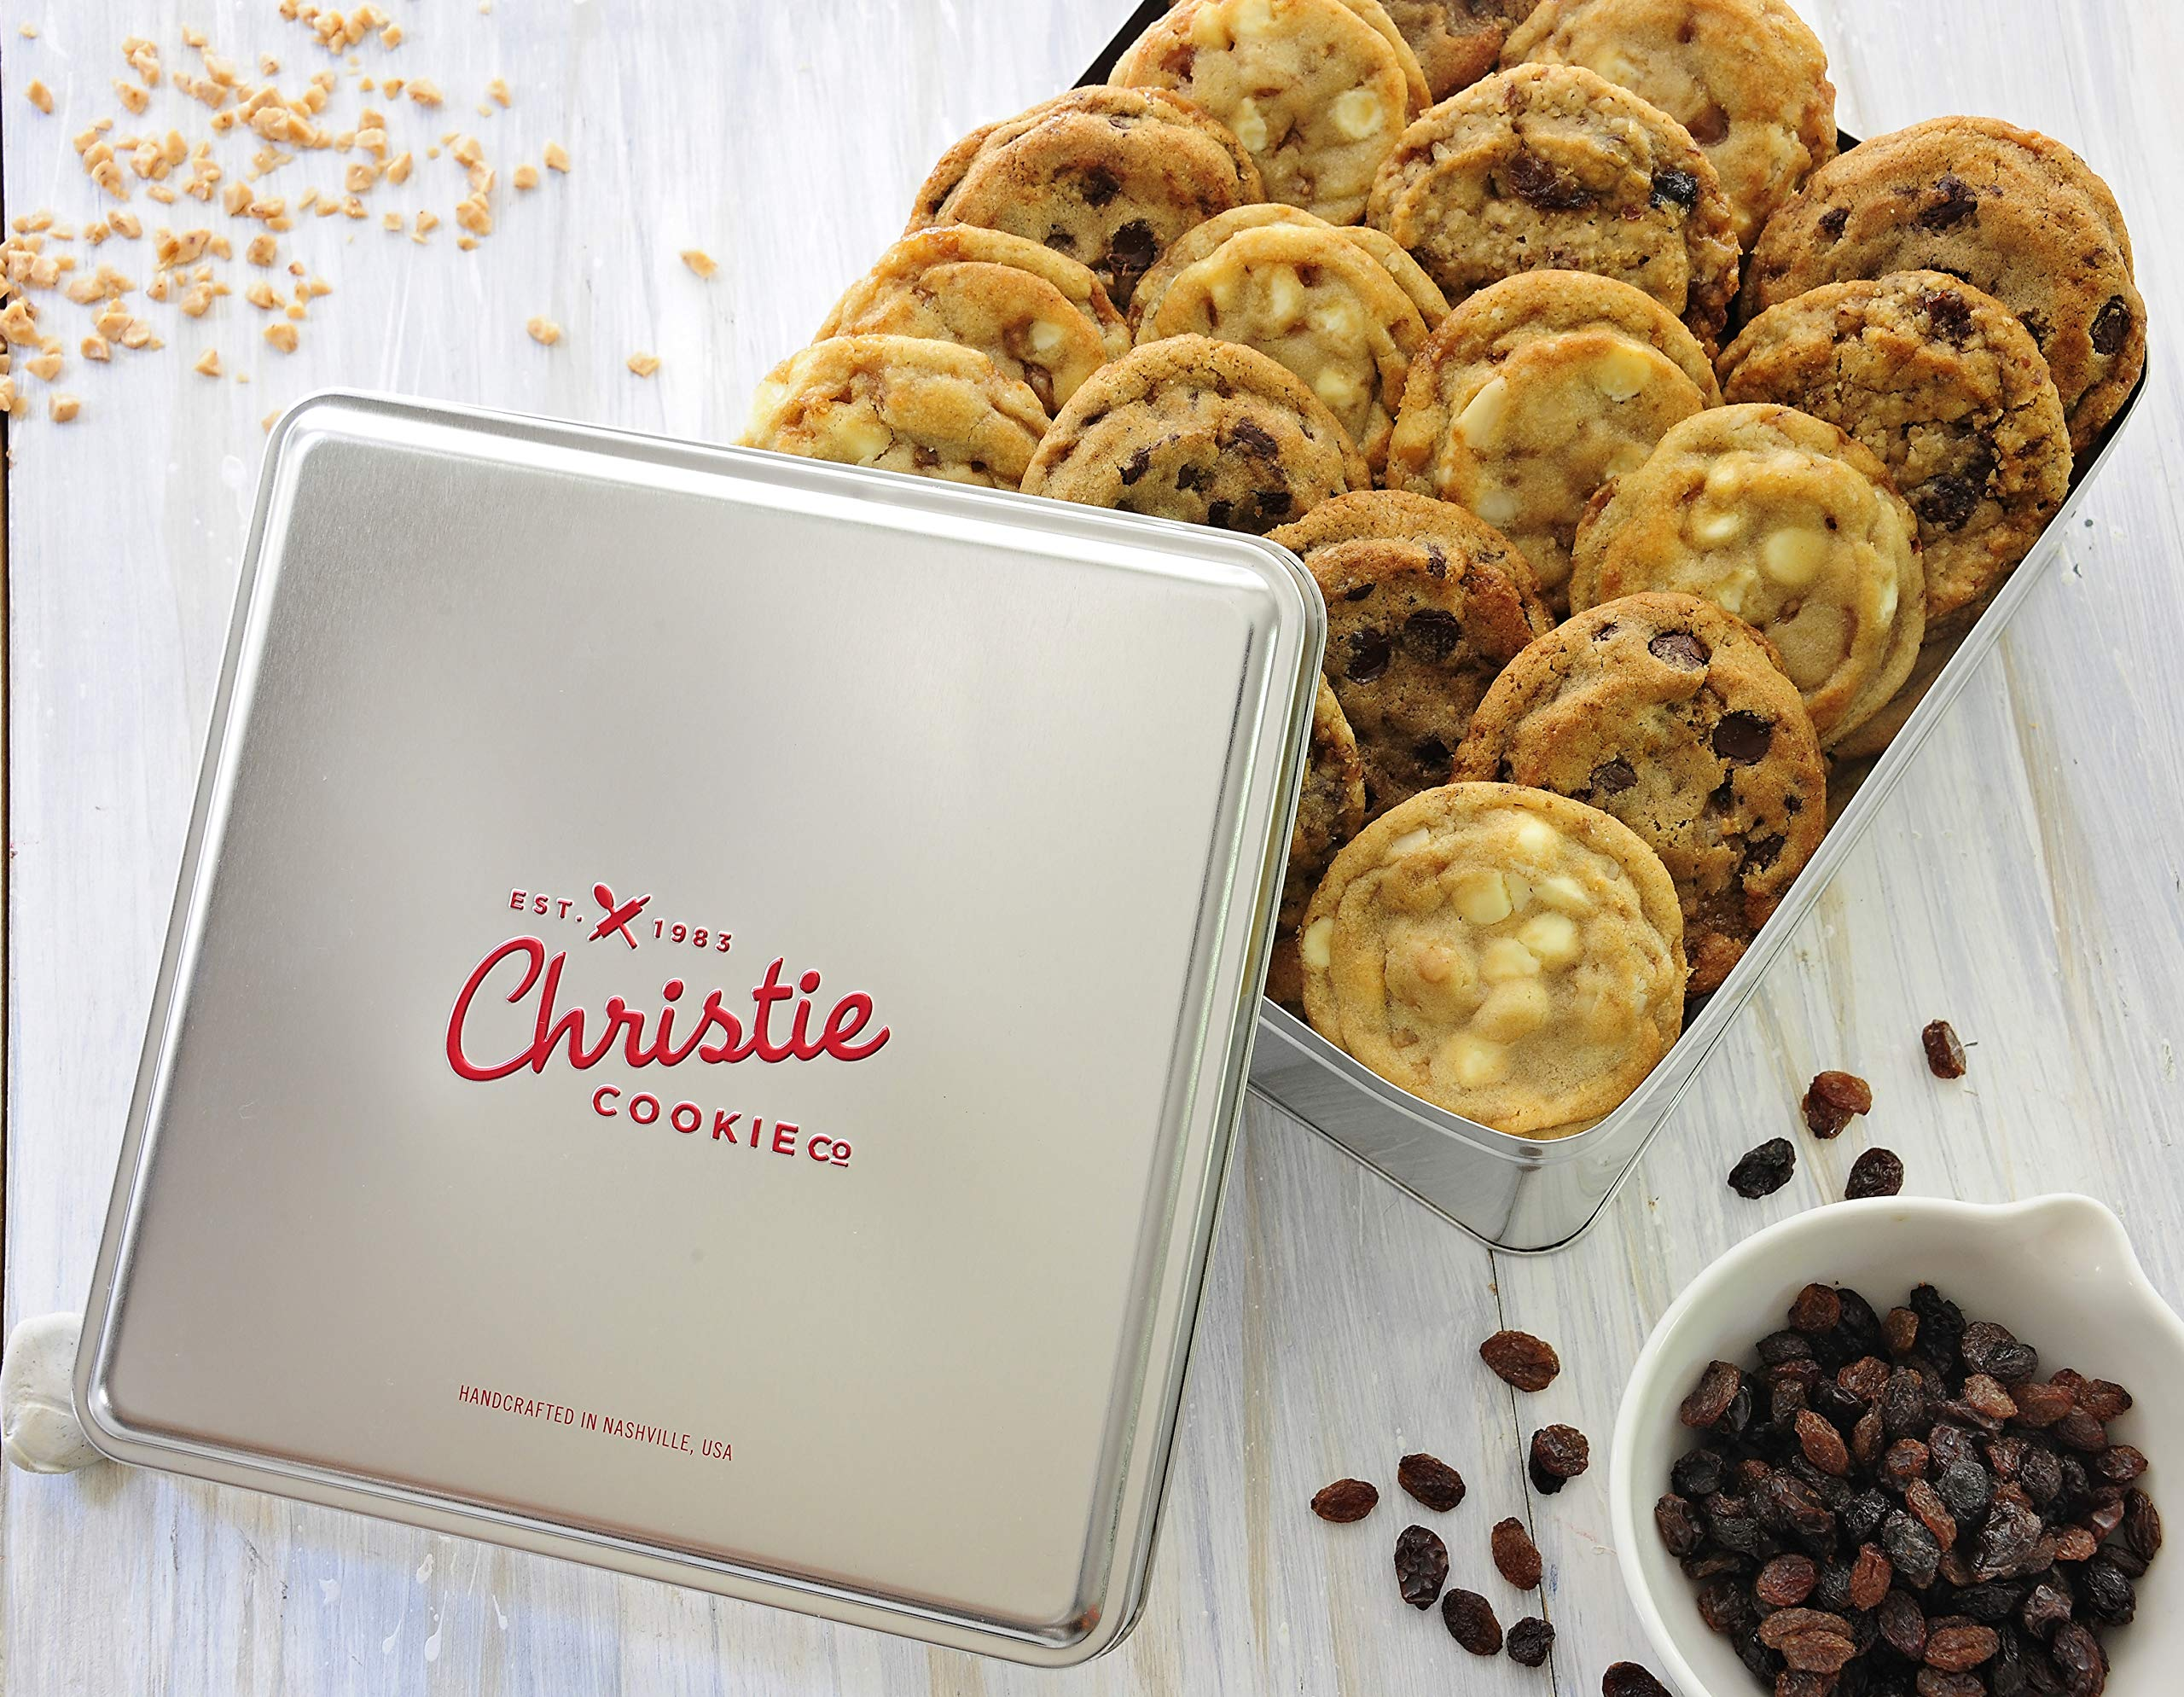 Christie Cookies, Gourmet Assorted Cookies, 24 Fresh-Baked Cookies in Silver Tin, No Added Preservatives, 100% Real Butter, Holiday & Corporate Gift Tin, Birthday Gift Idea for Men & Women